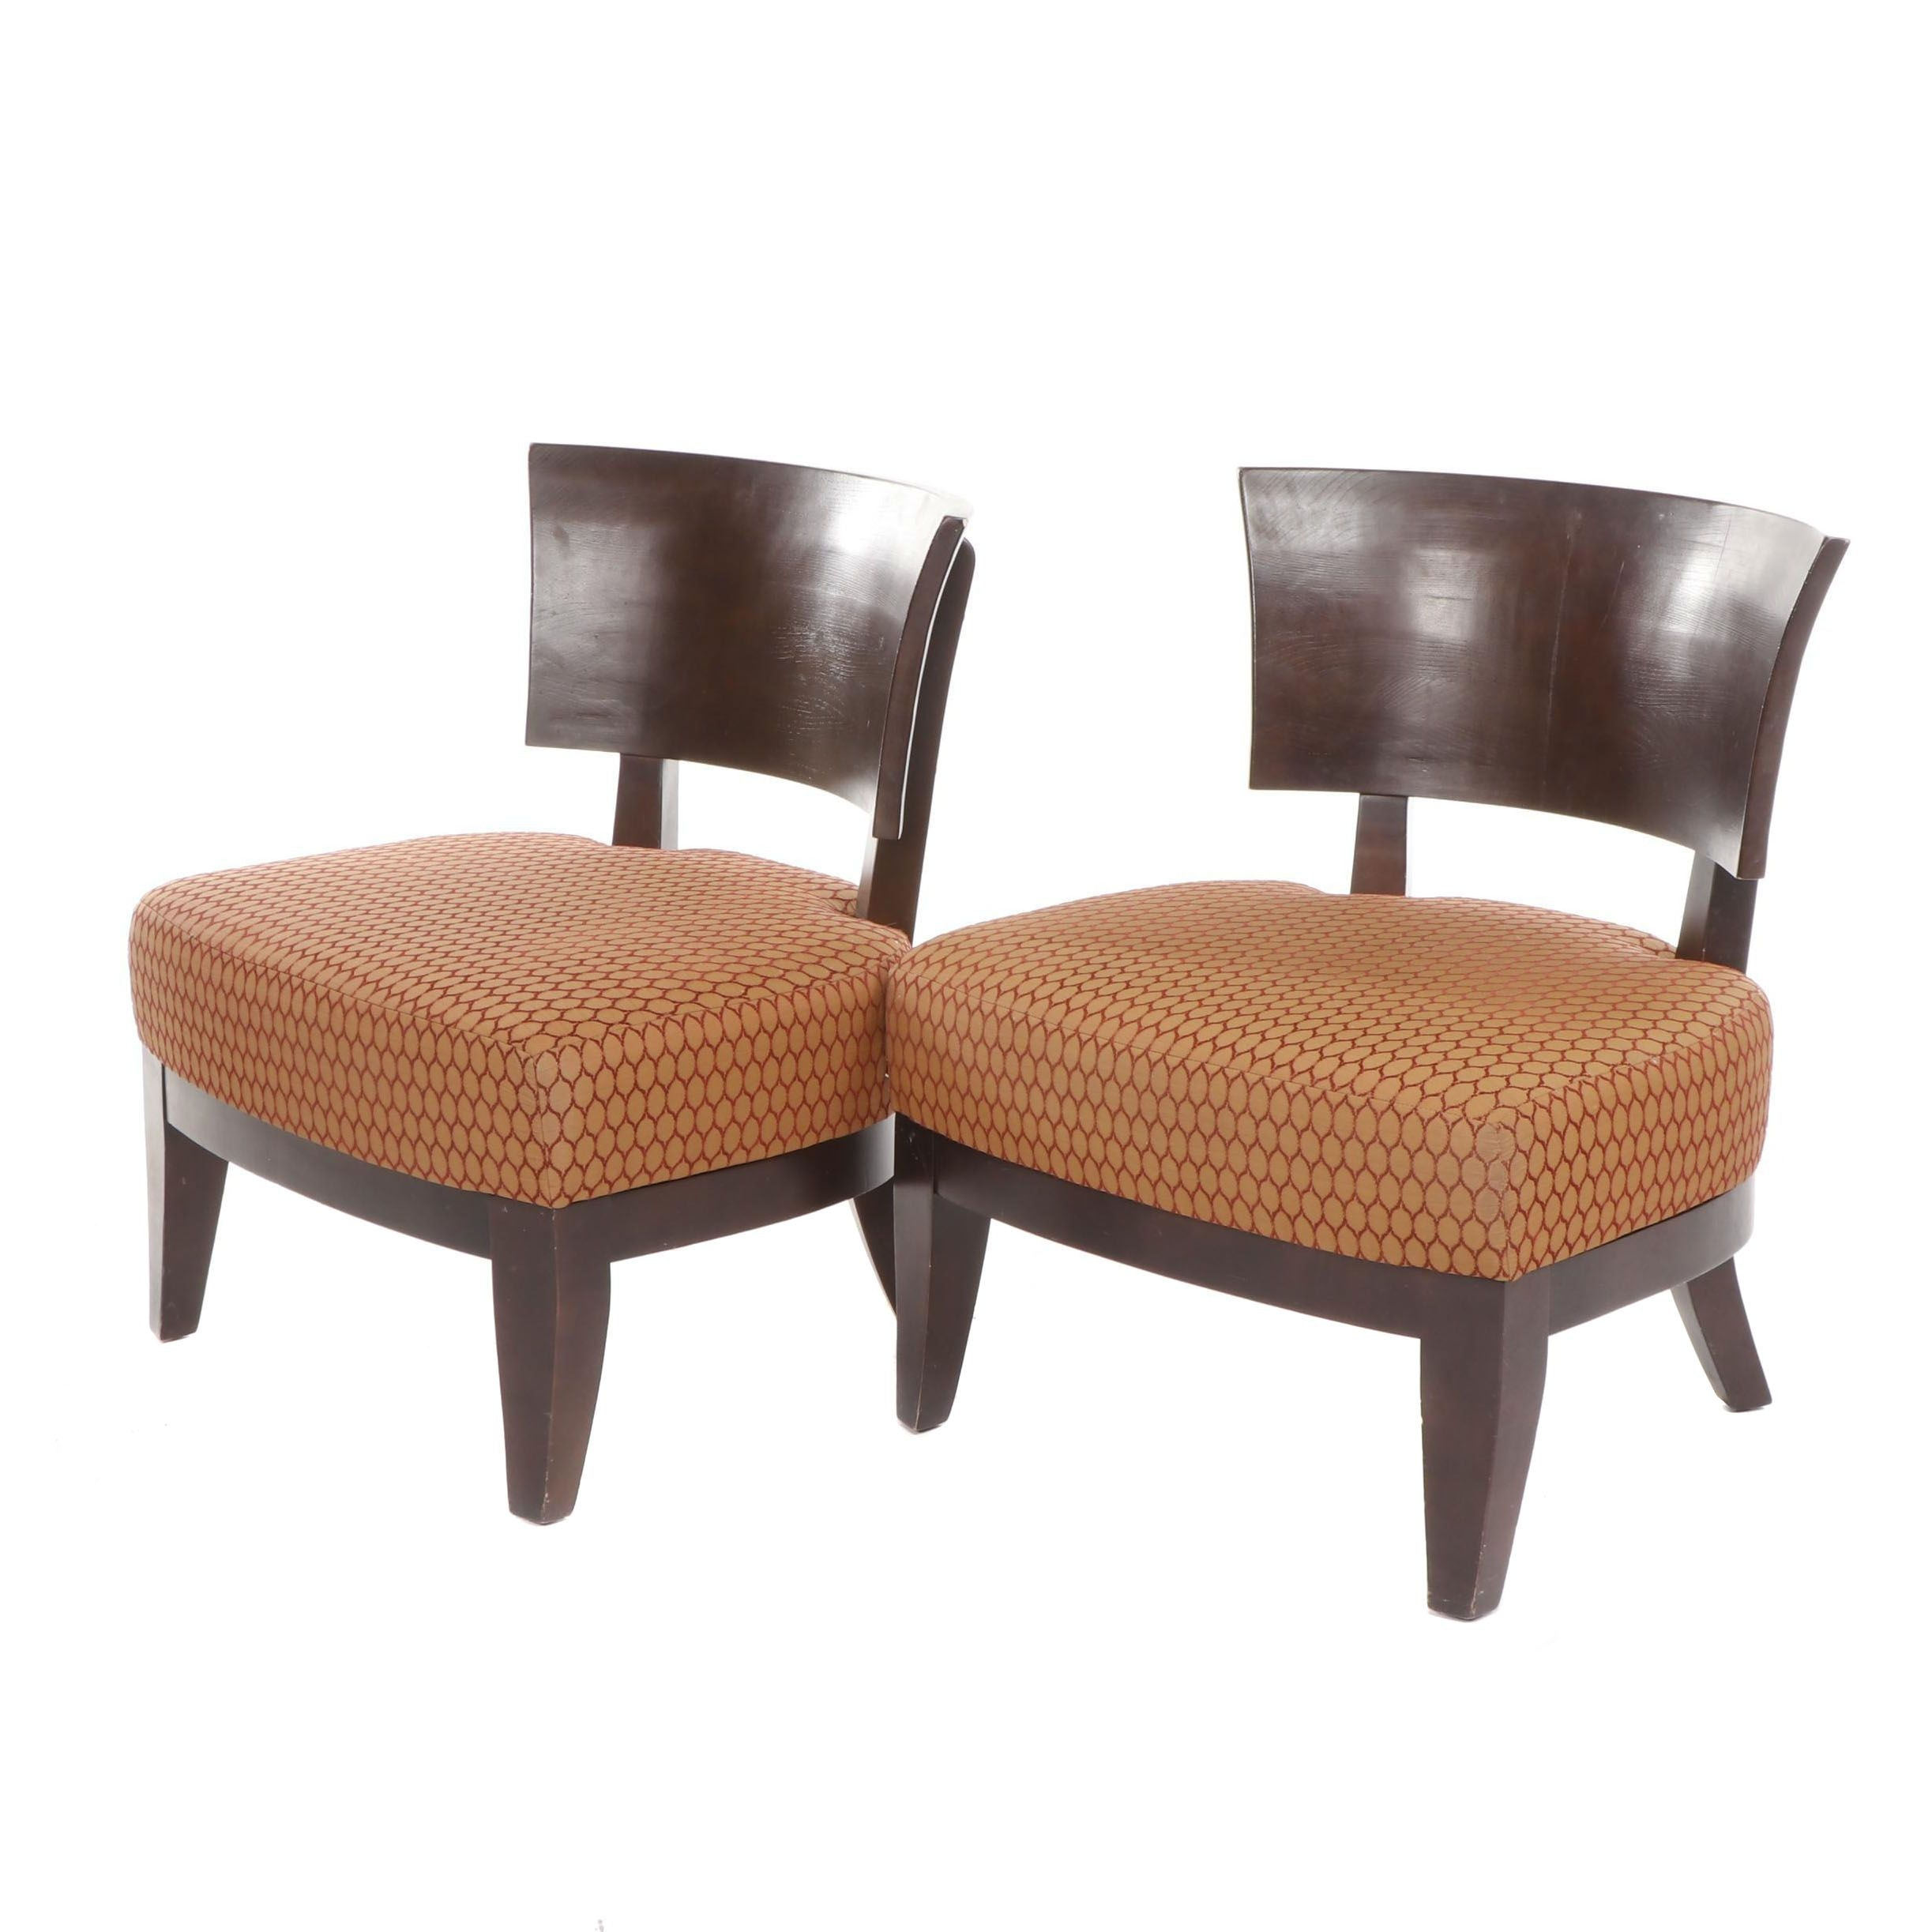 Oversized Wooden Chairs with Upholstered Seats